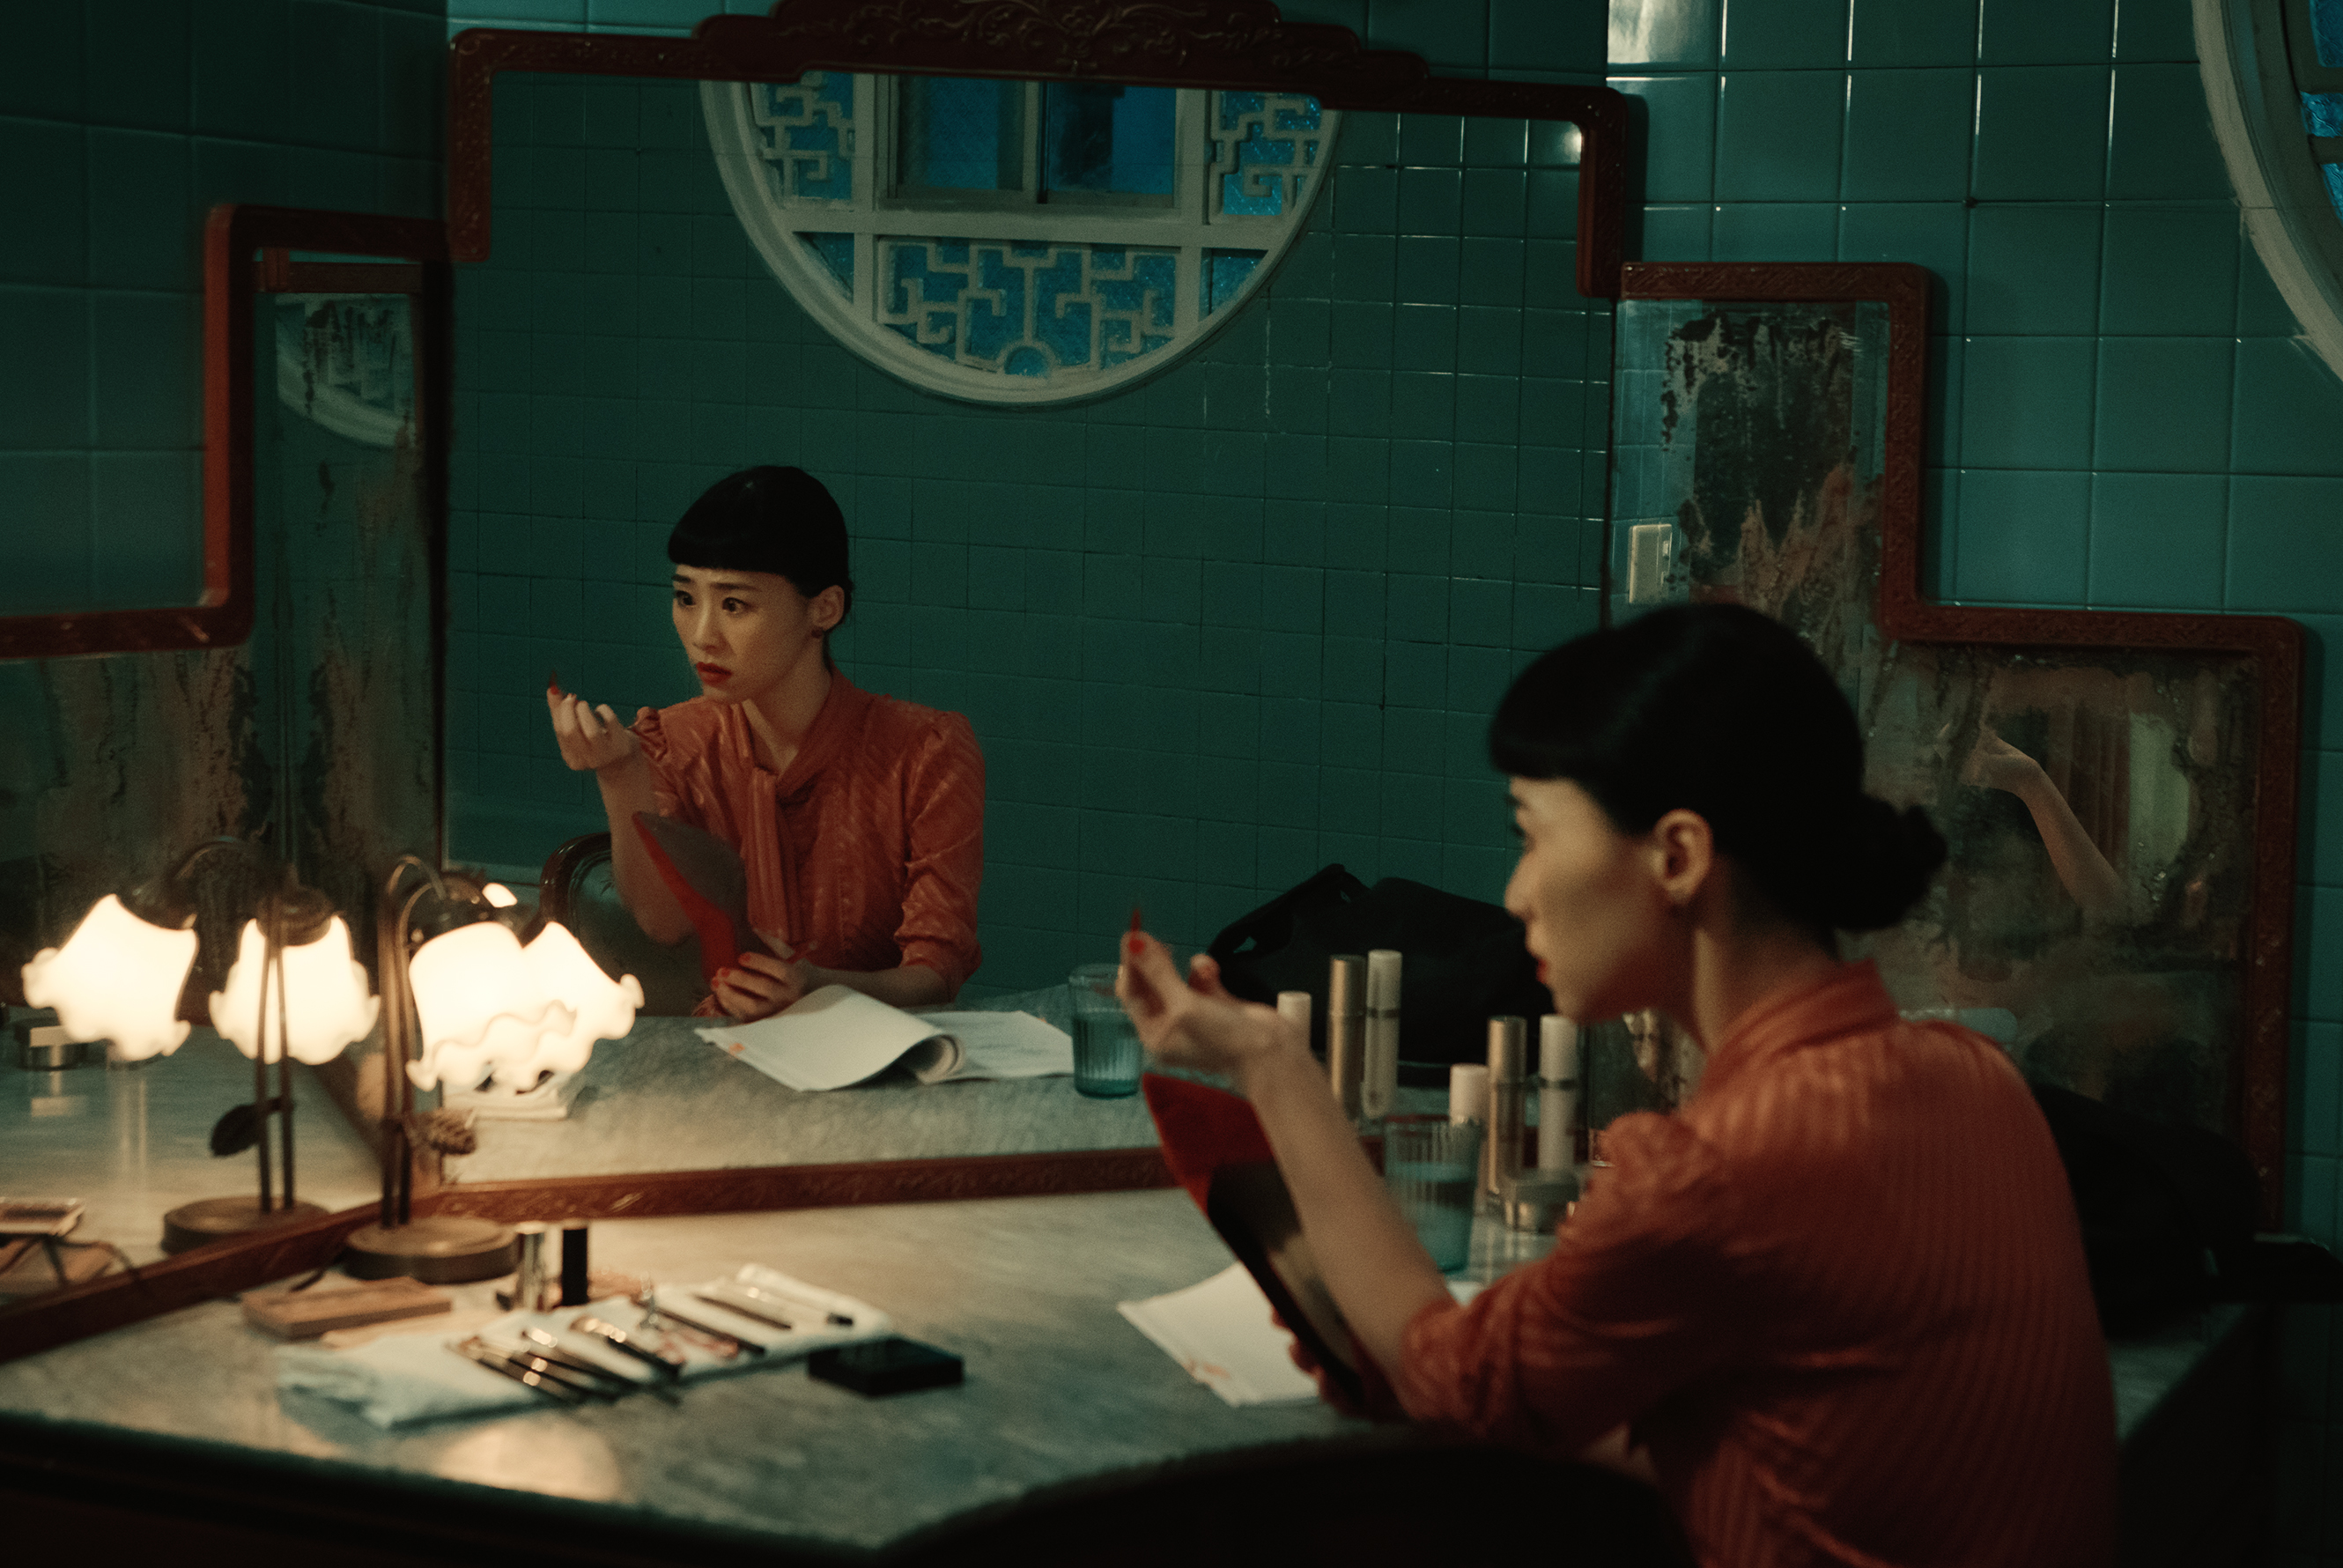 "The U.S. Premiere and Theatrical Release of ""Nina Wu"" will Take Place in N.Y., with Director Midi Z, Writer/Star Ke-Xi Wu Present at Post-Screening Q&A Sessions"